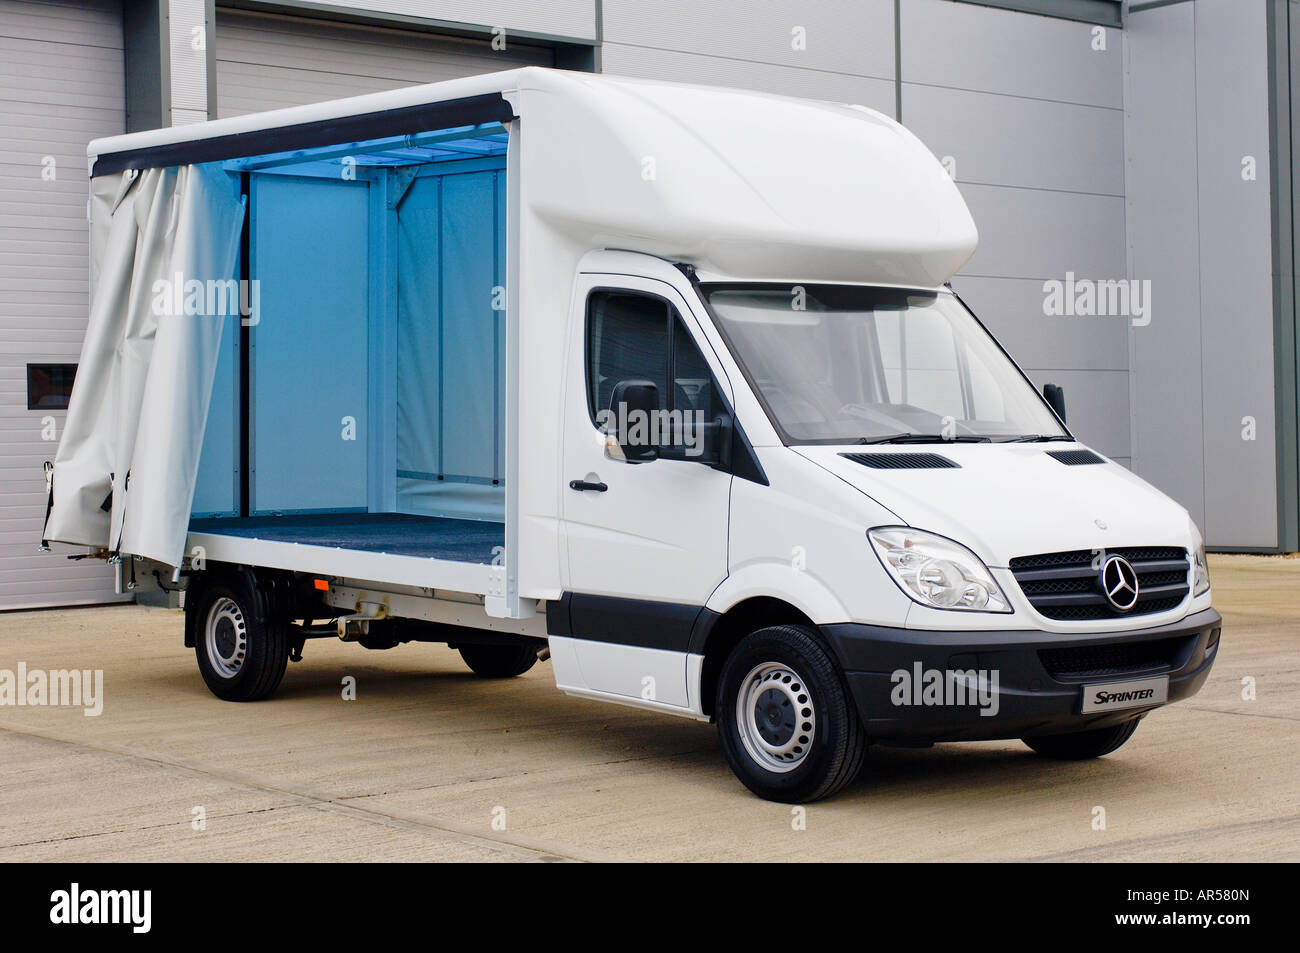 Mercedes Benz Sprinter Luton curtain sided truck left open to show ...